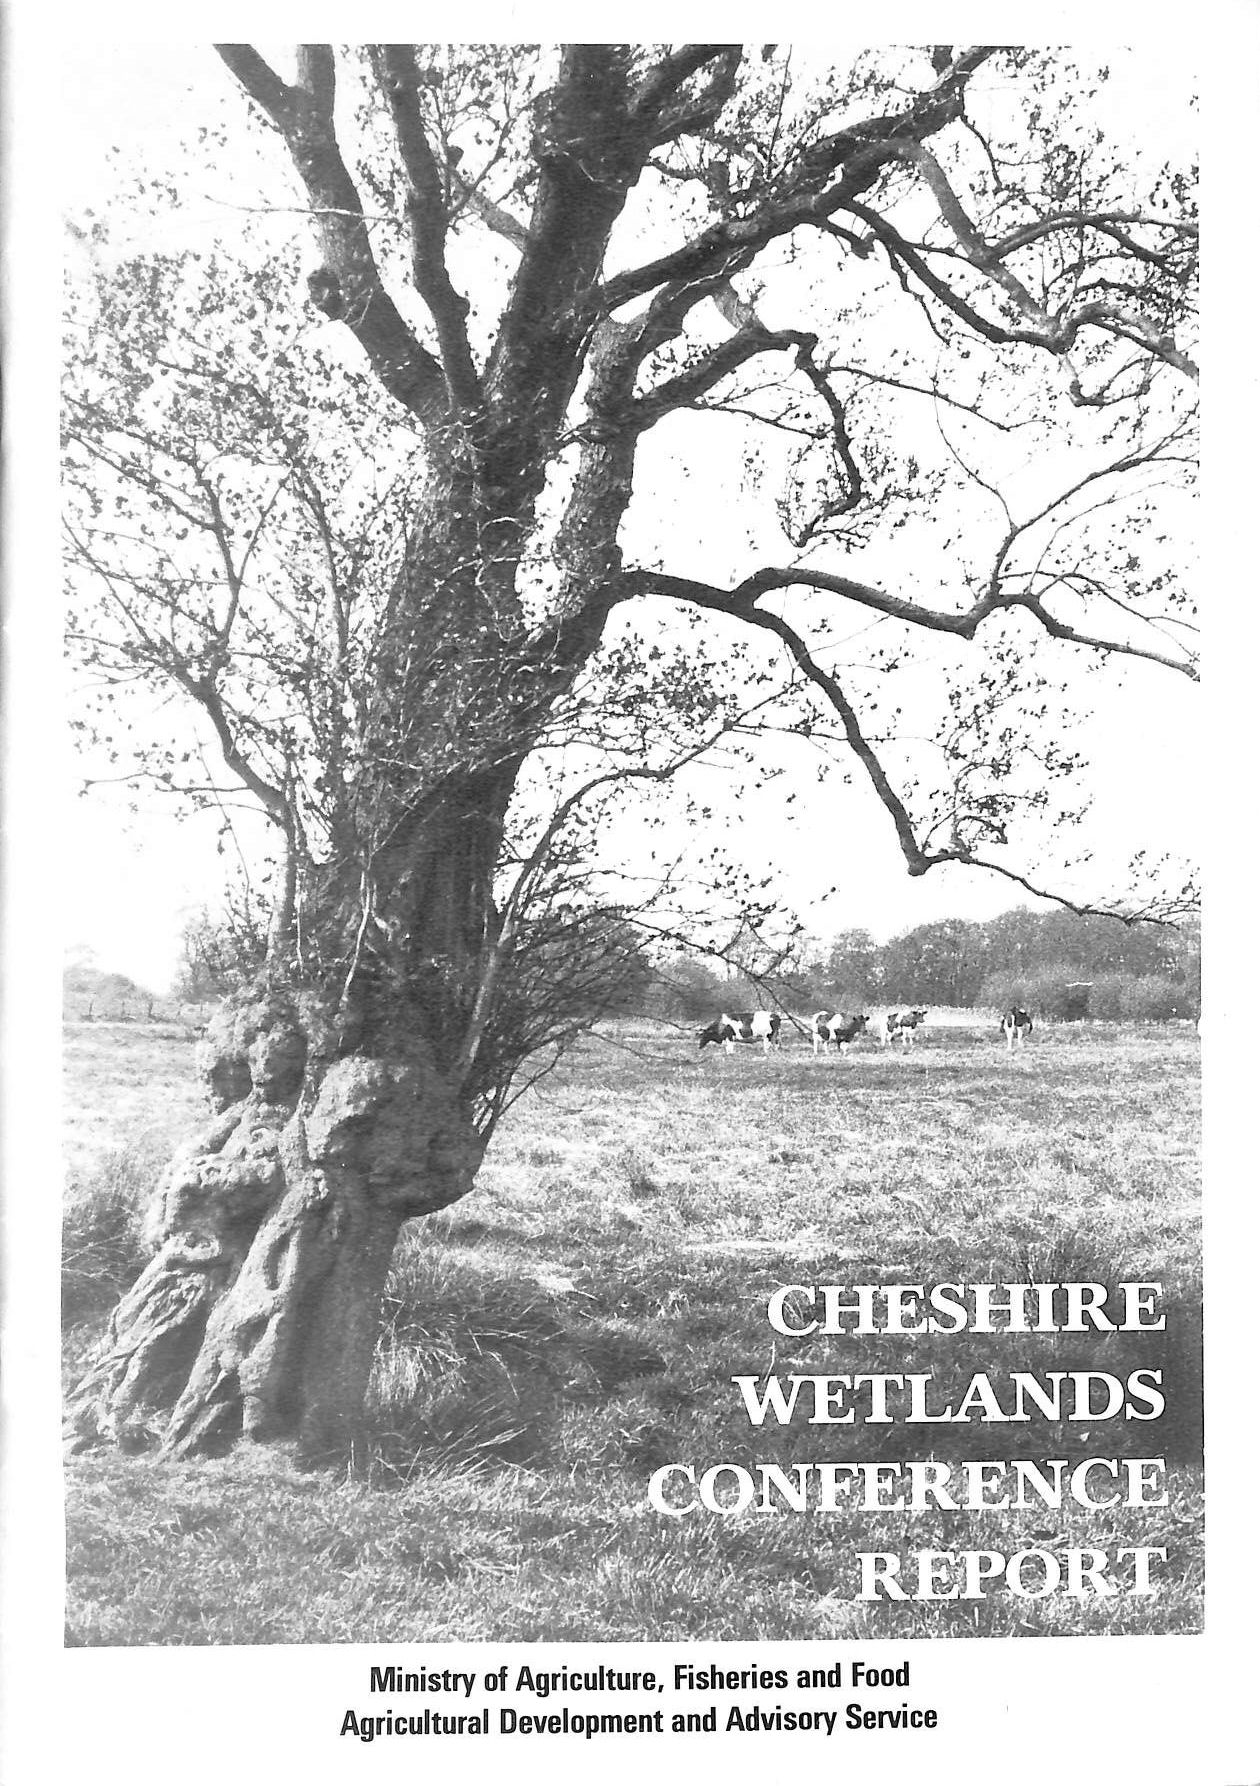 Cheshire Wetlands Conference Report